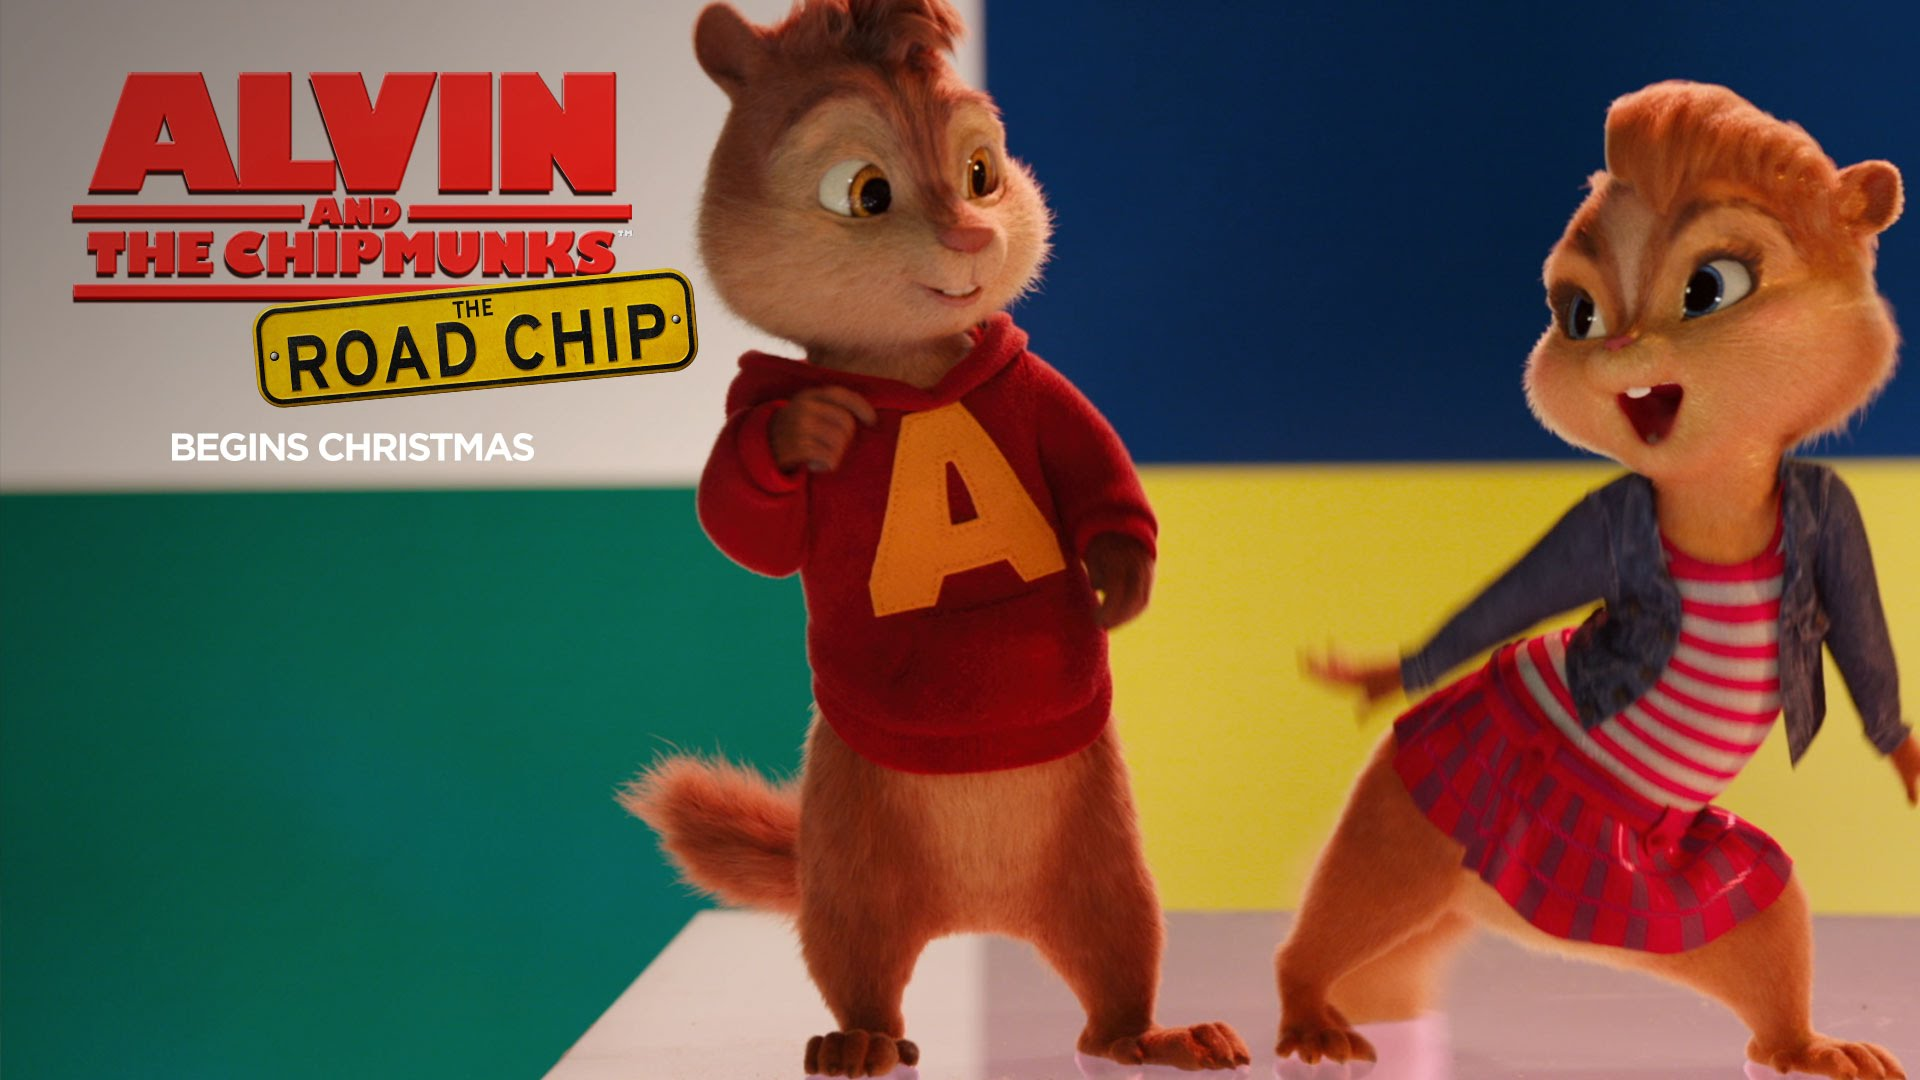 Alvin And The Chipmunks Alvin And Brittany alvin and the chipmunks: the road chip wallpapers, movie, hq